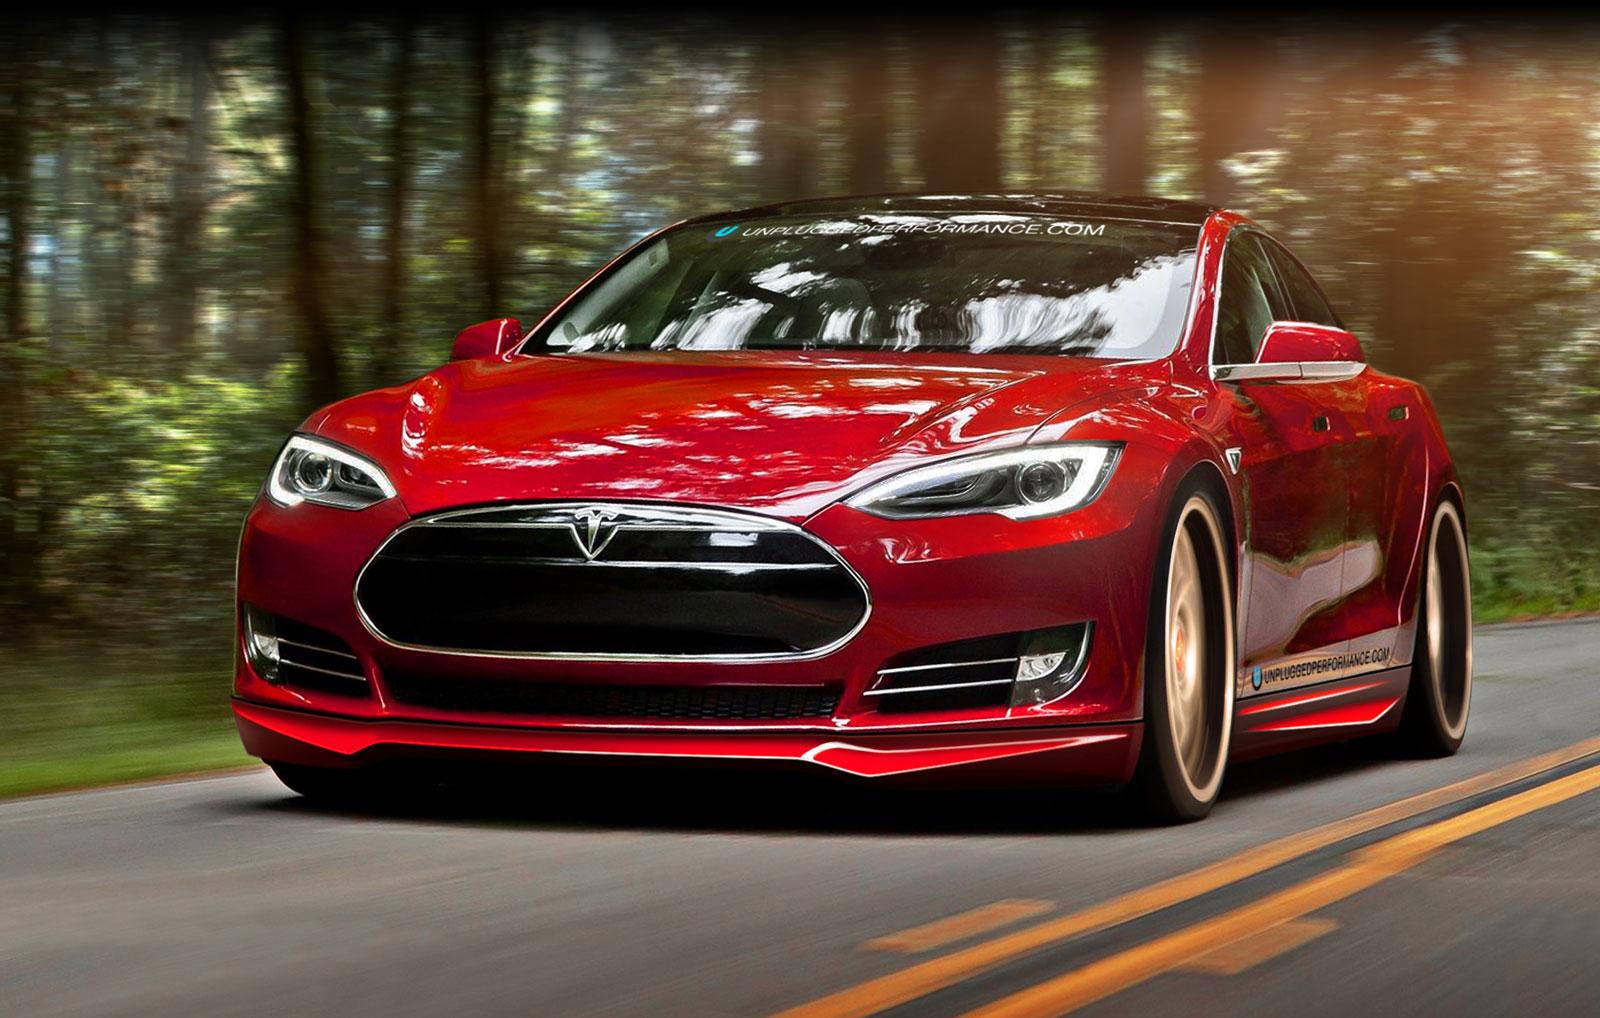 http://www.automobilesreview.com/img/unplugged-performance-tesla-model-s/unplugged-performance-tesla-model-s-01.jpg